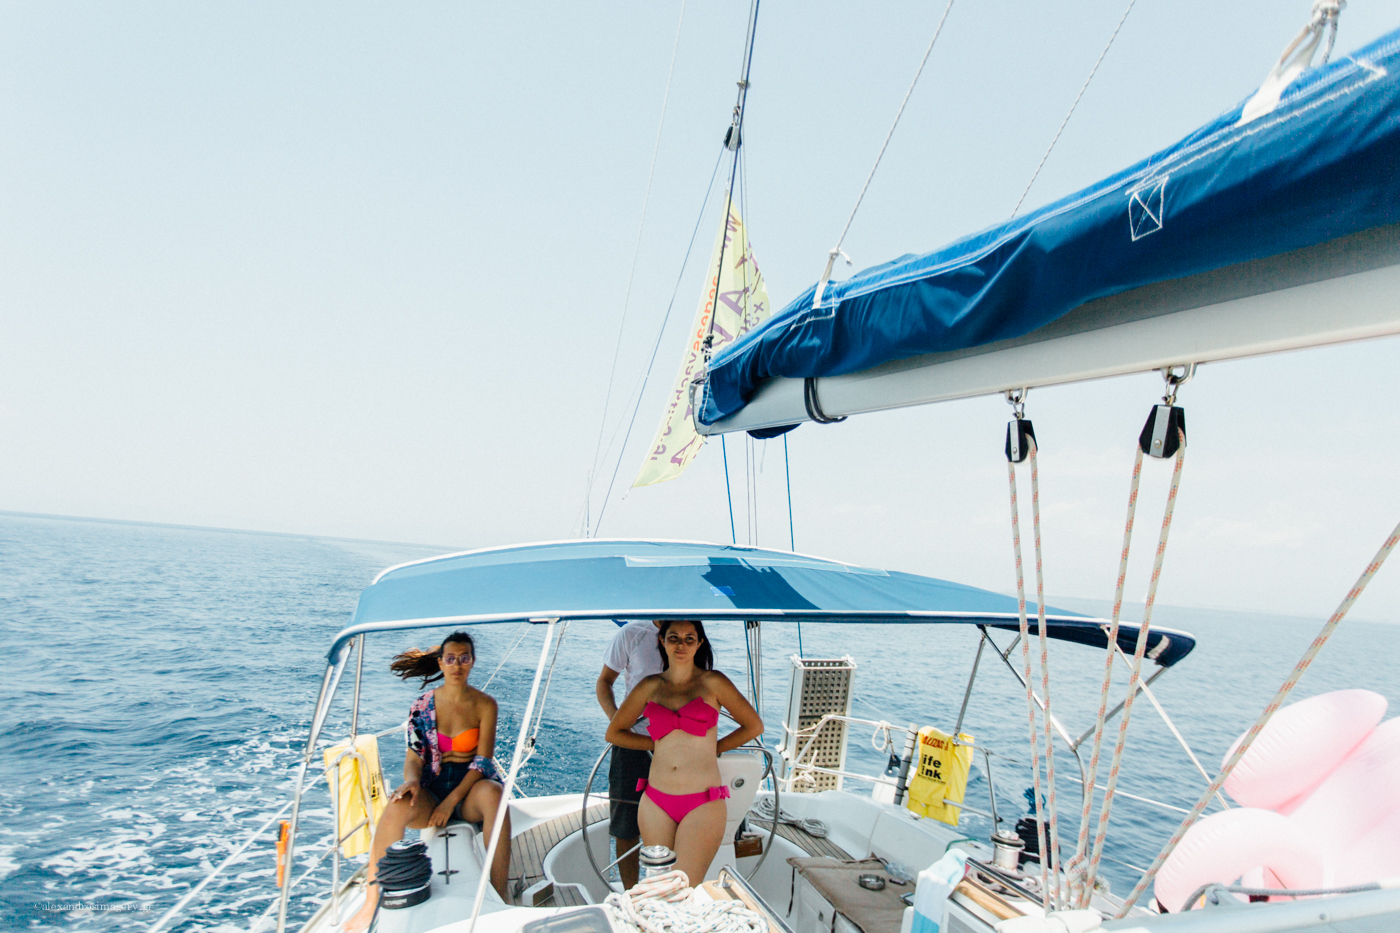 13-17 JUNE THASSOS SAILING TOUR